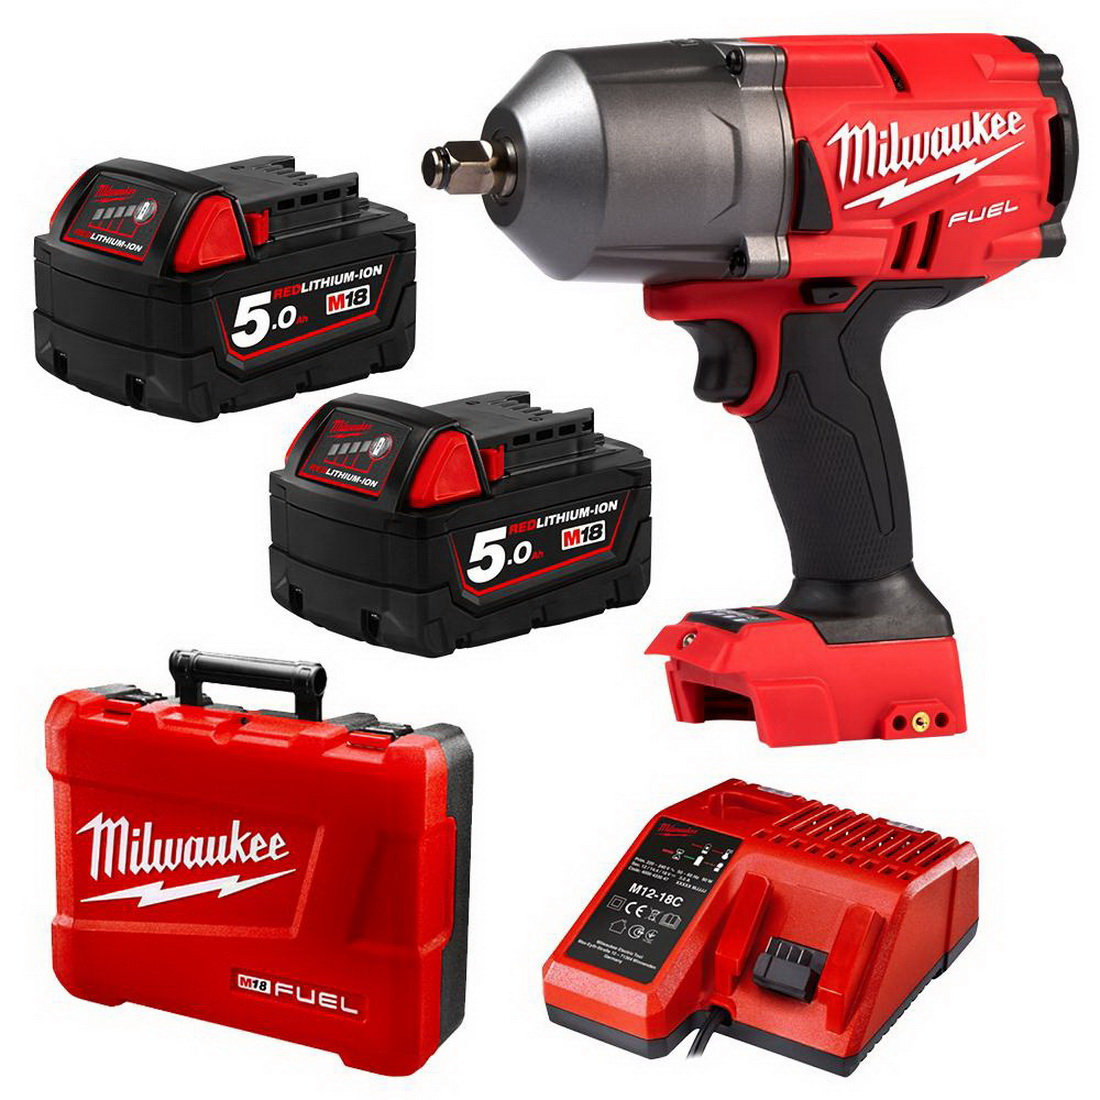 M18 FUEL Cordless High Torque Impact Wrench Kit with Friction Ring 1/2 inch